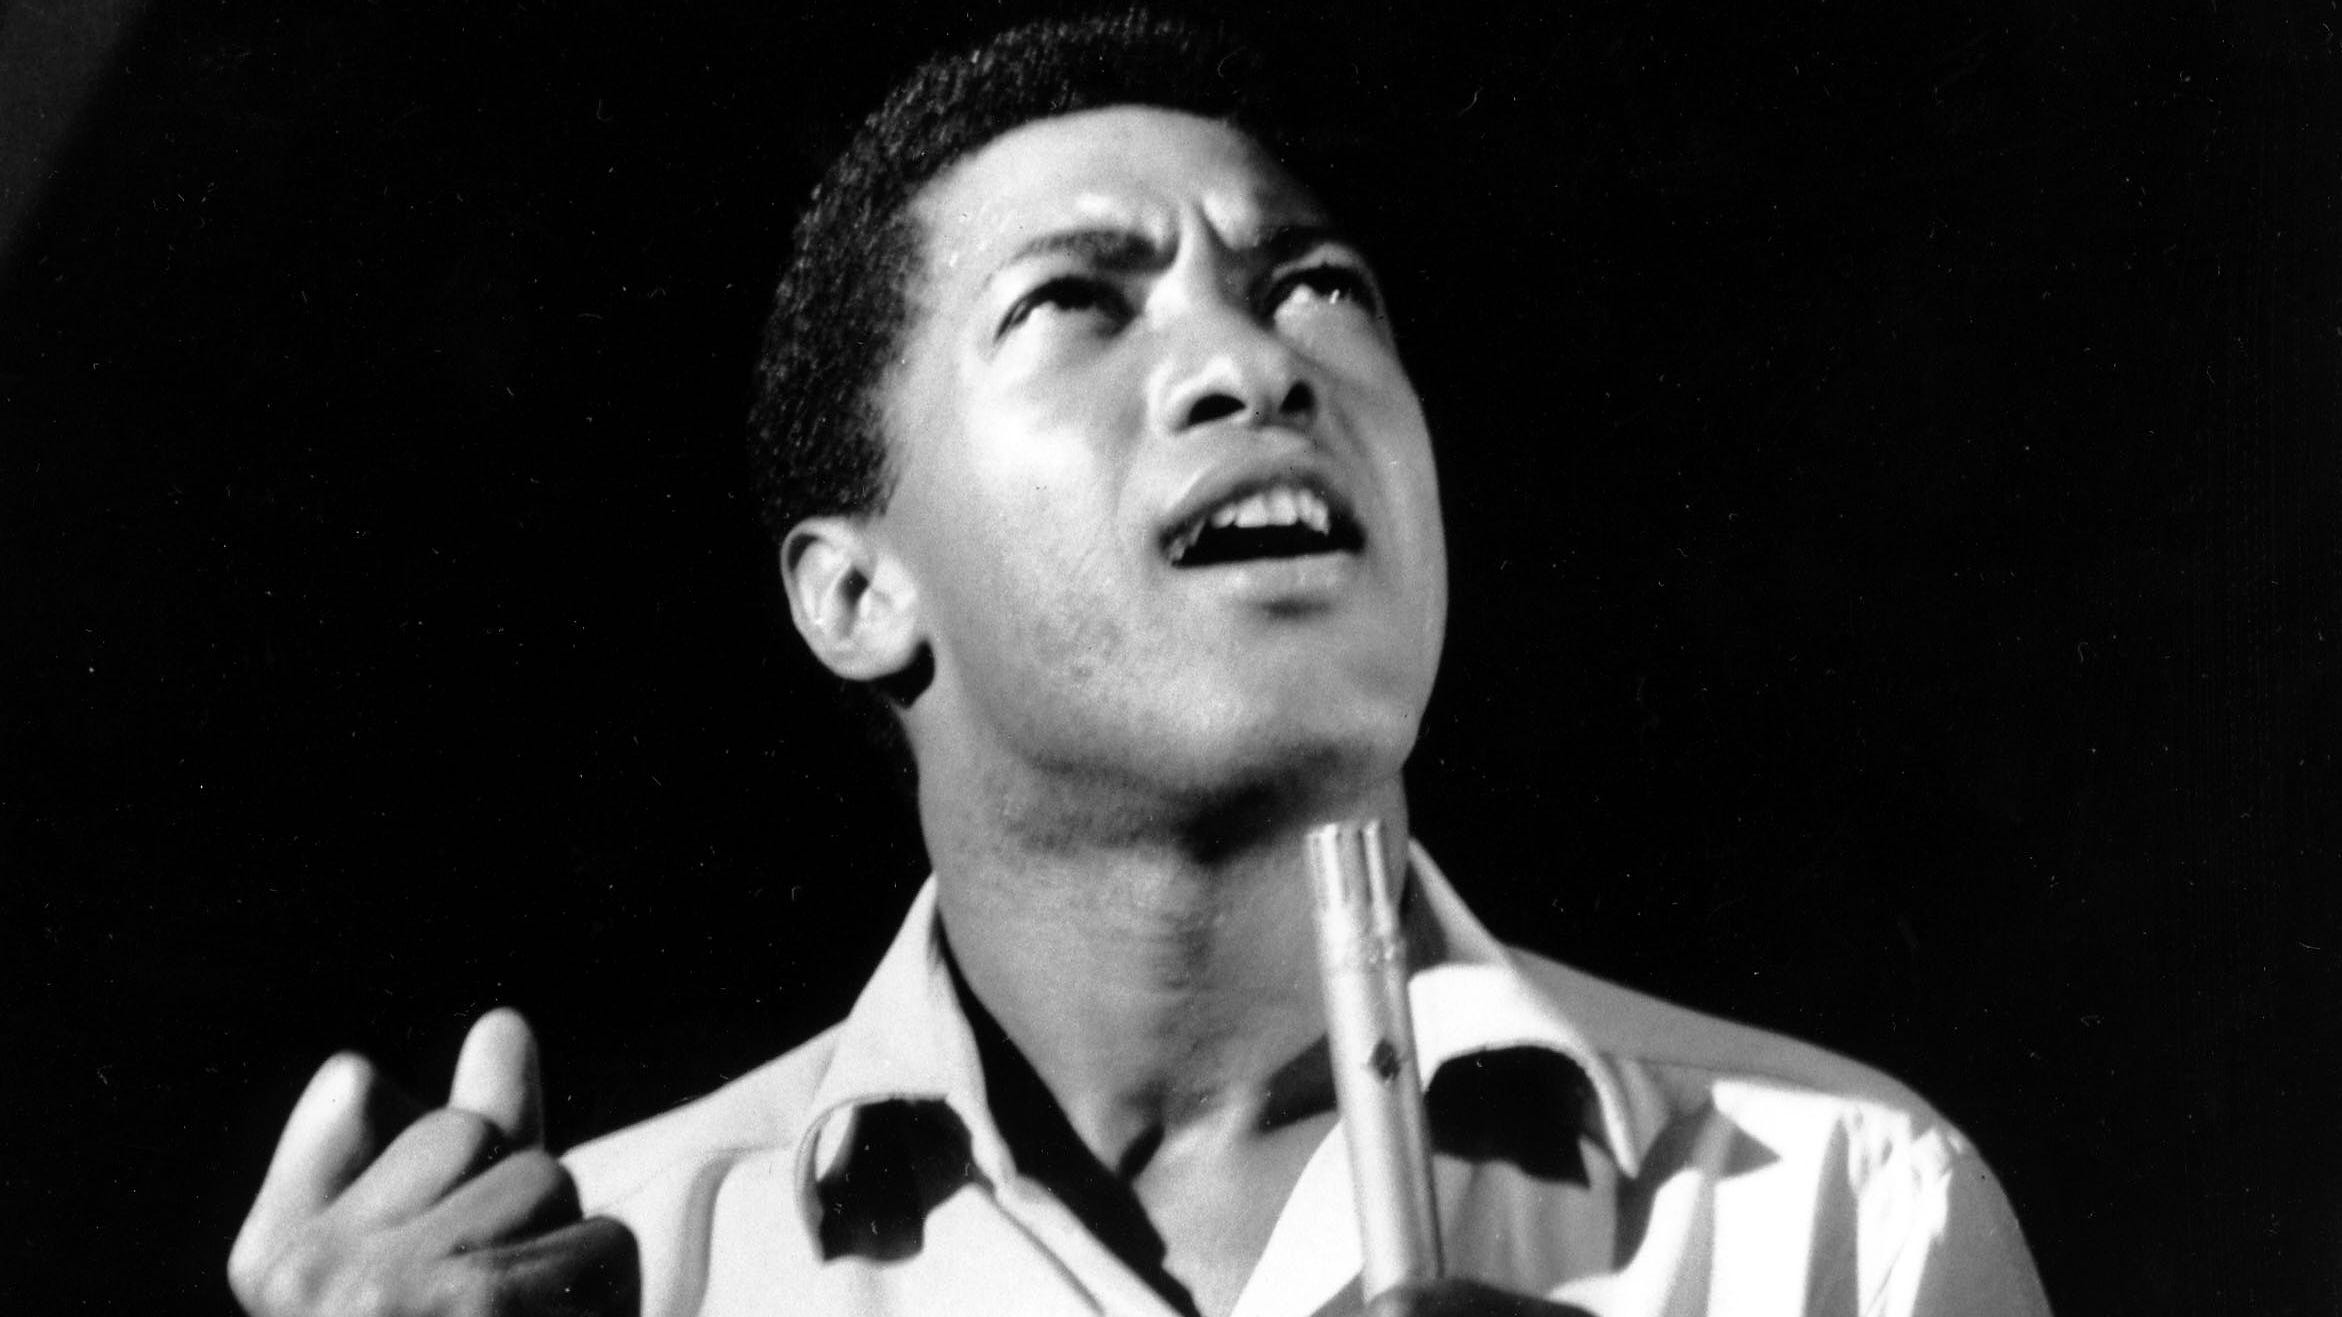 'One Night in Miami': The true story behind Sam Cooke's stirring 'A Change is Gonna Come' - USA TODAY